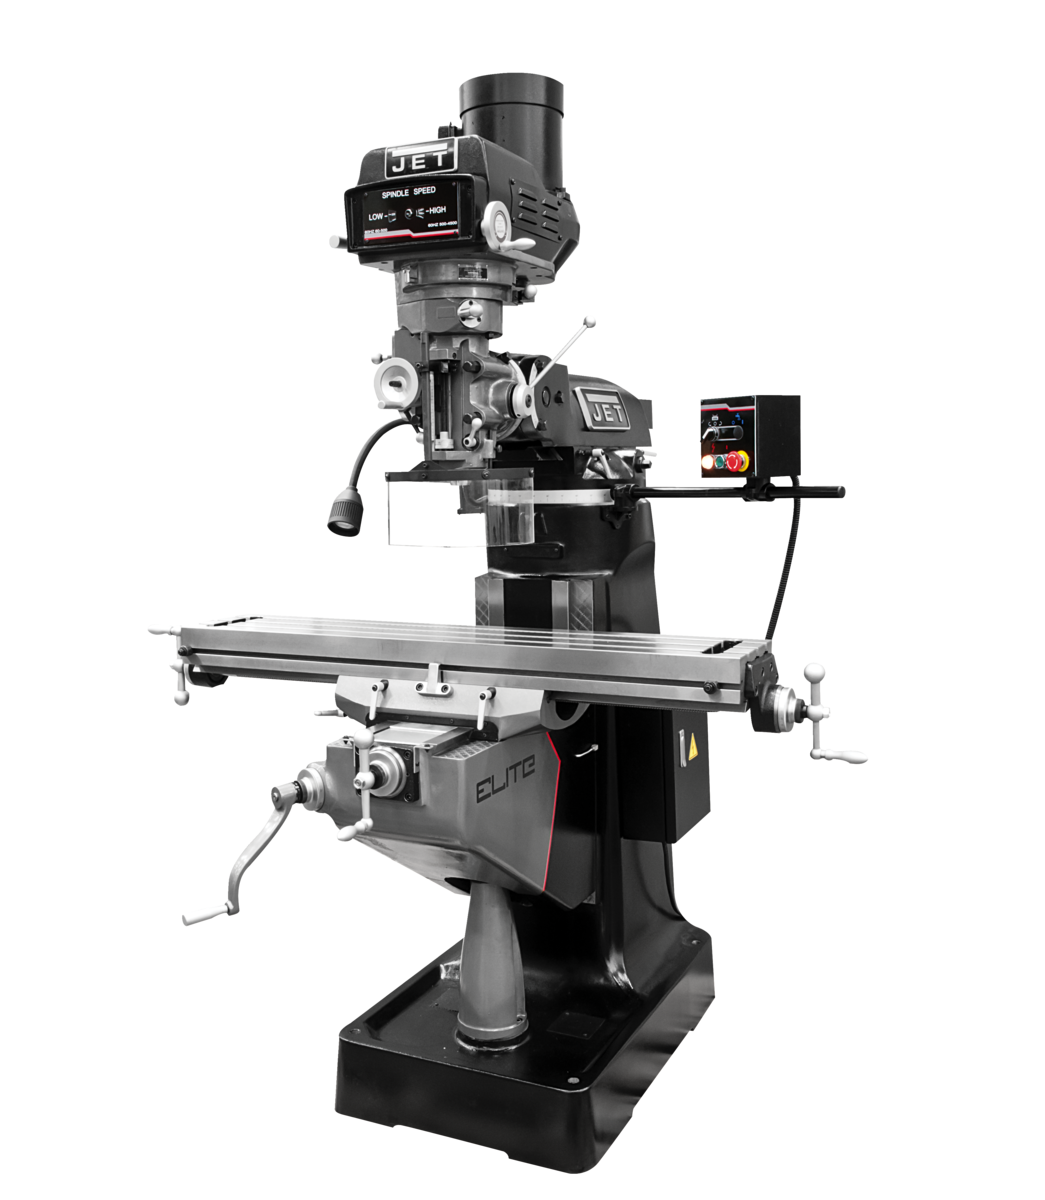 ETM-949 Mill with 2-Axis Newall DP700 DRO and Servo X, Y-Axis Powerfeeds